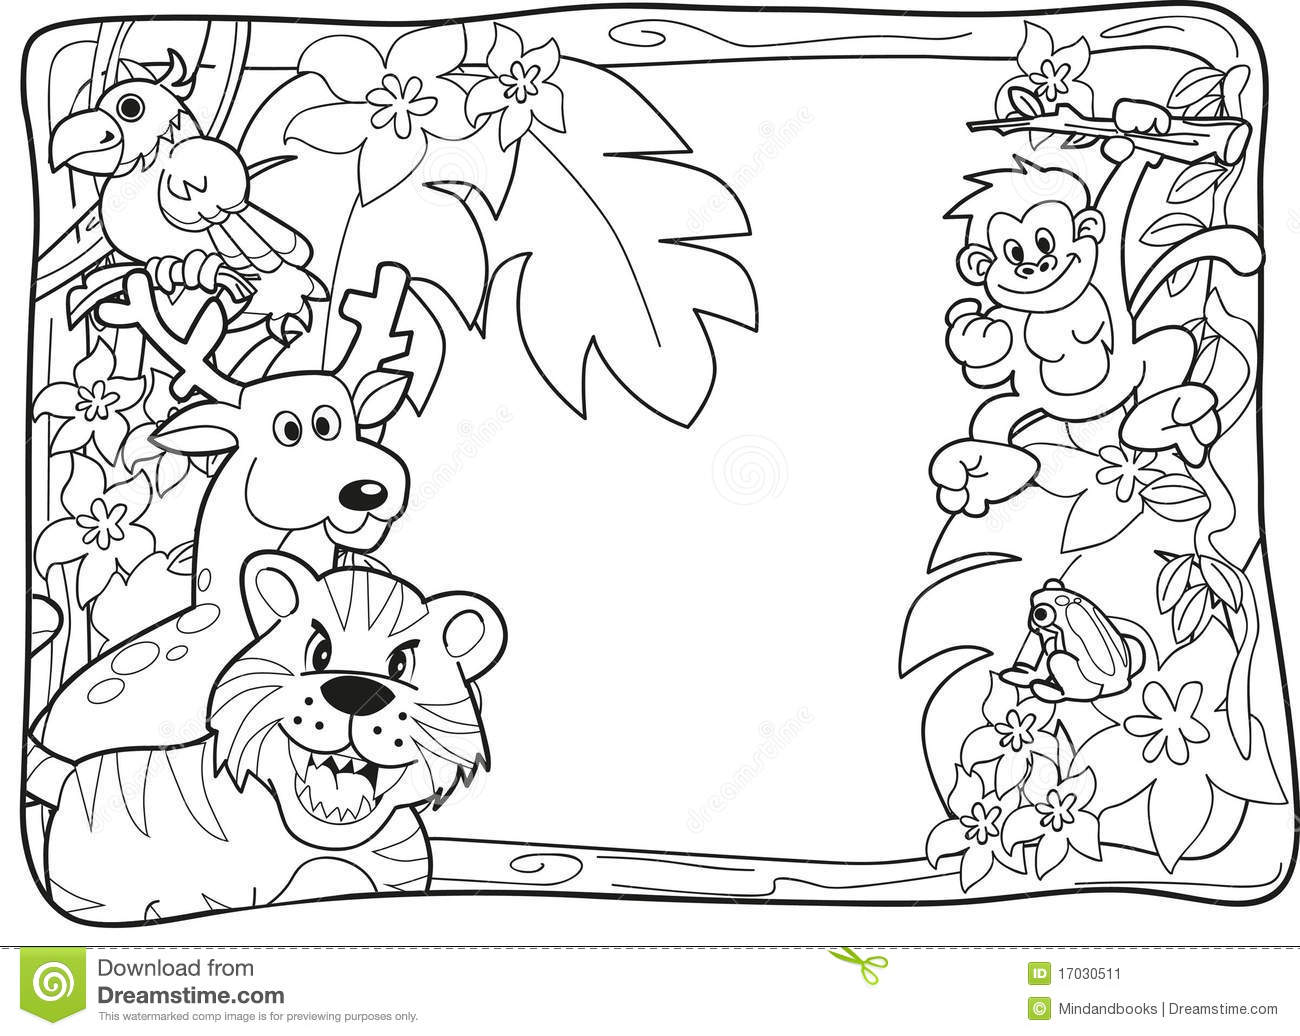 animals and food coloring pages - photo#21